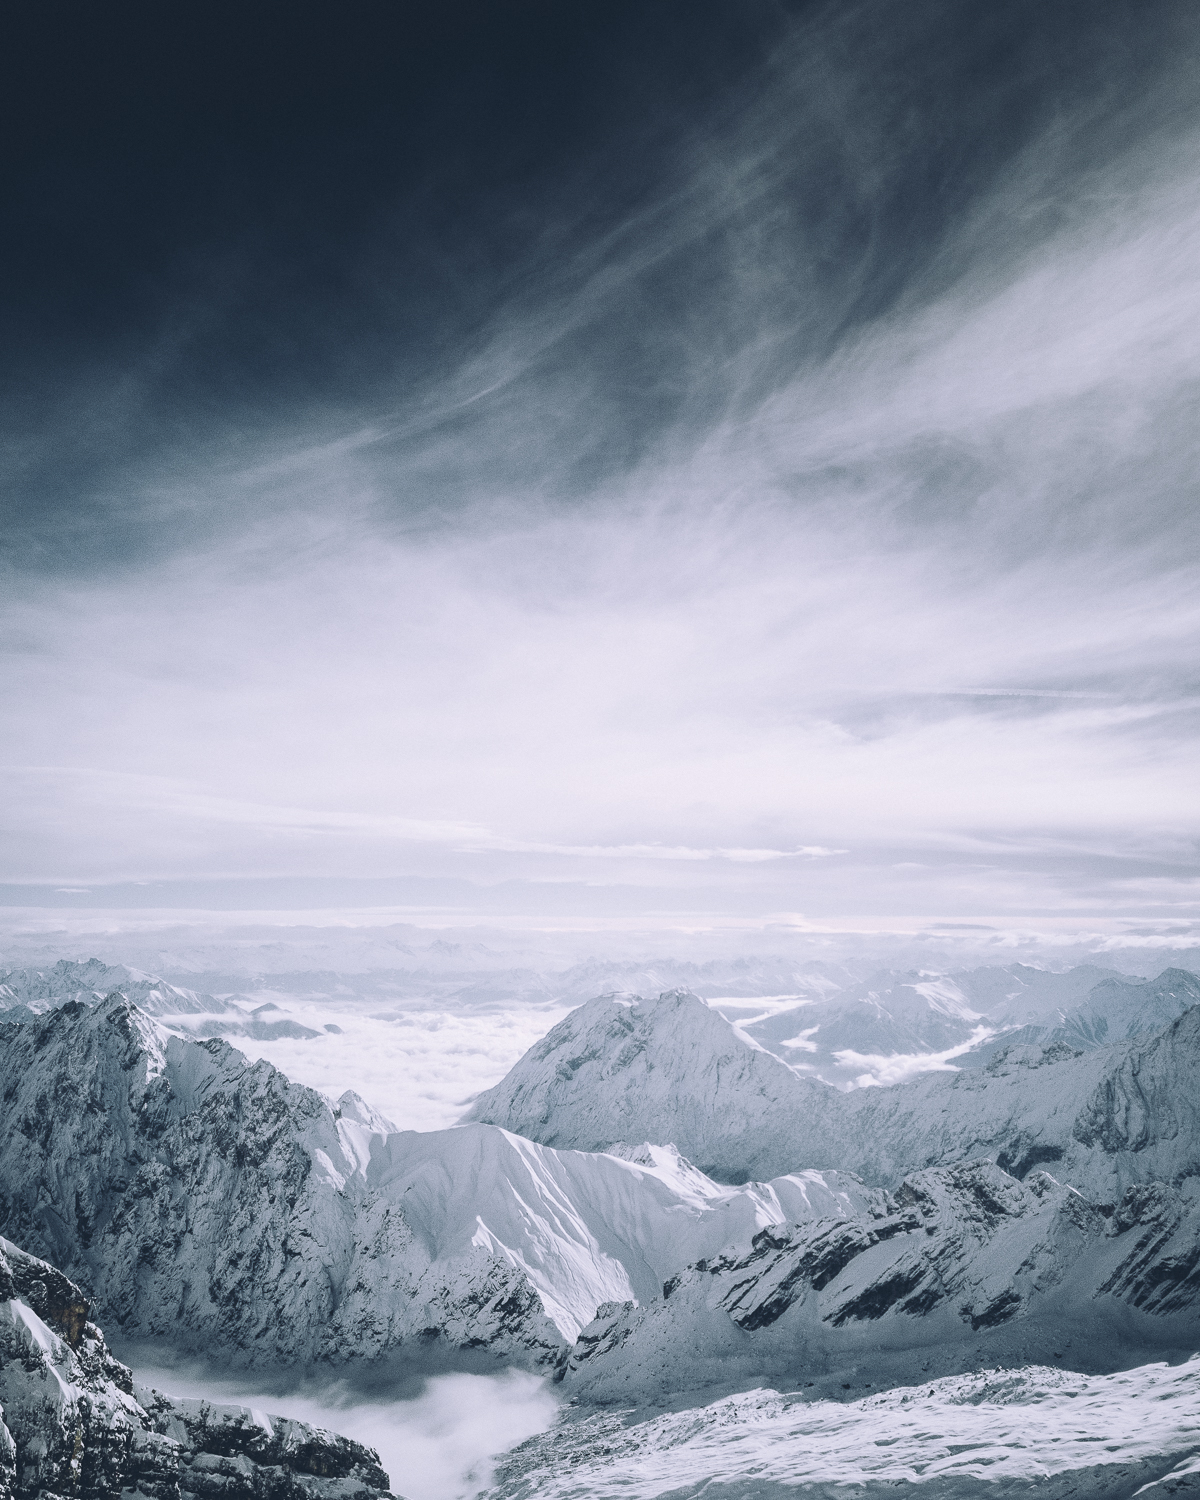 In this image from the Zugspitze in Germany, I deliberately chose to give the sky 2/3 os the space to open up the scene and show the magnificence of the space.